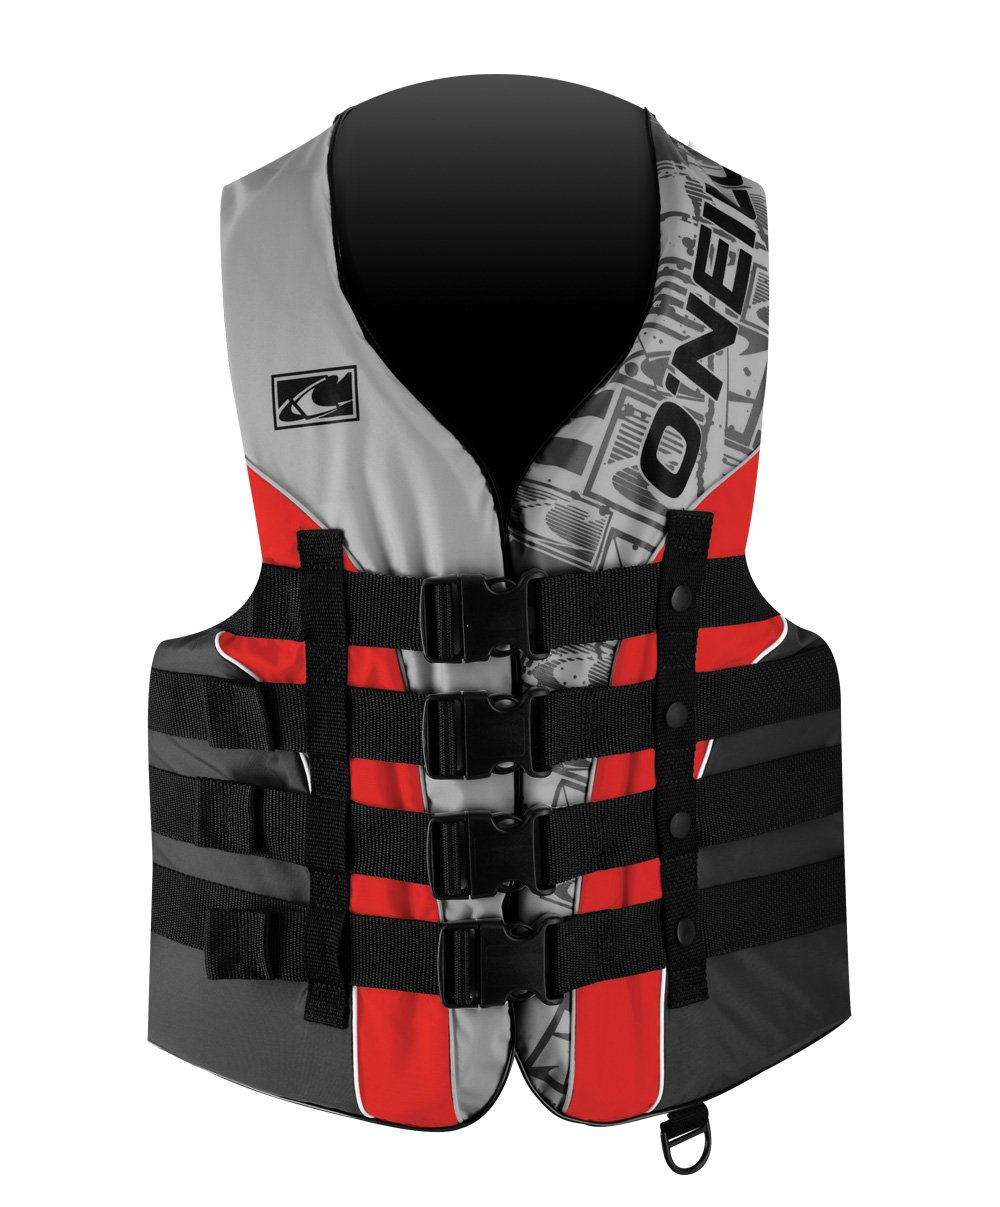 O'Neill Wake Waterski Youth Superlite USCG Vest